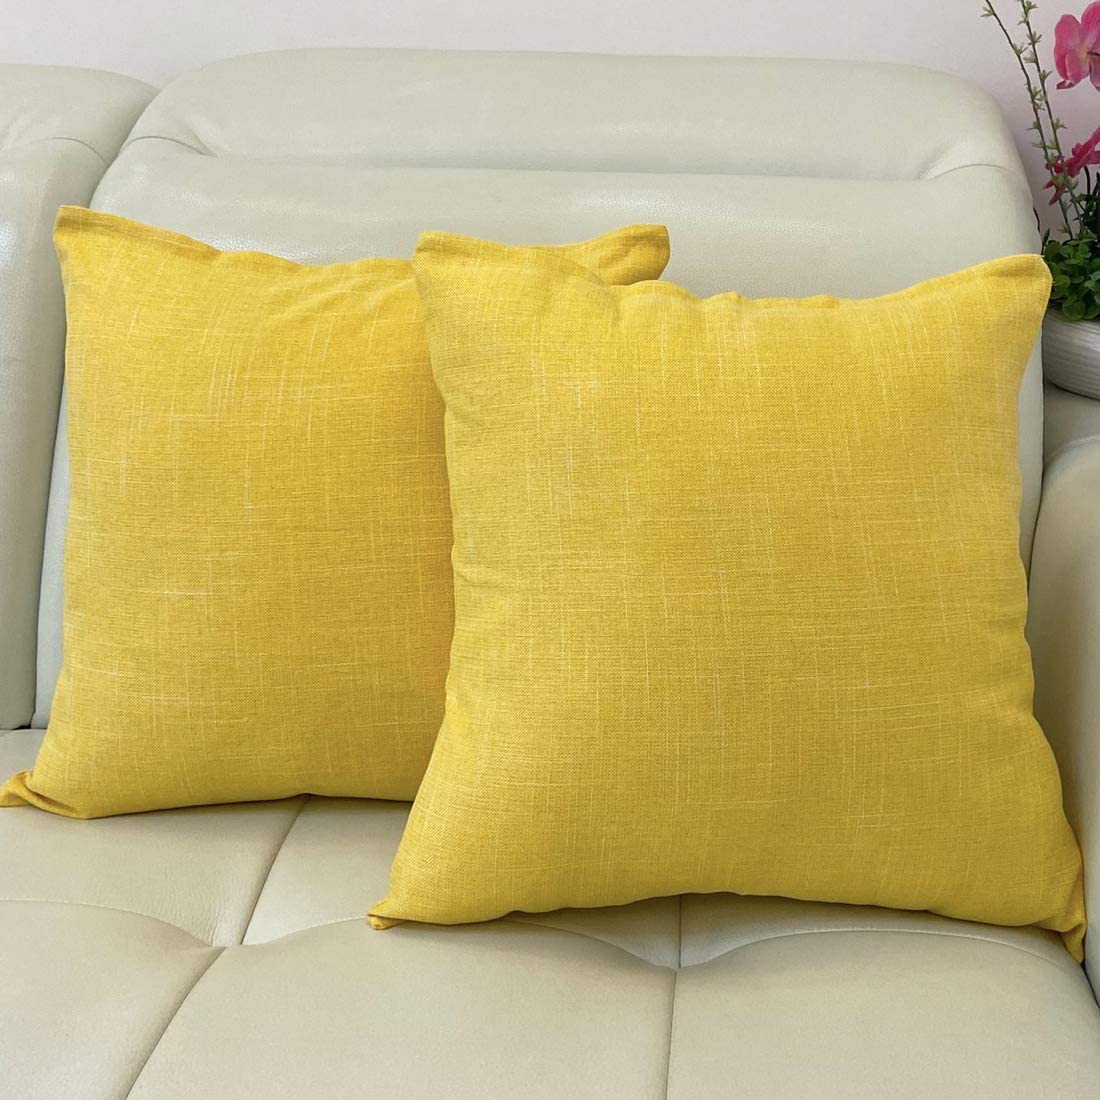 Find-In-Find 20x20 2 Pack Burlap Throw Pillow Cases Cushion Covers Solid Pillow Covers for Sofa Couch Bed,Yellow